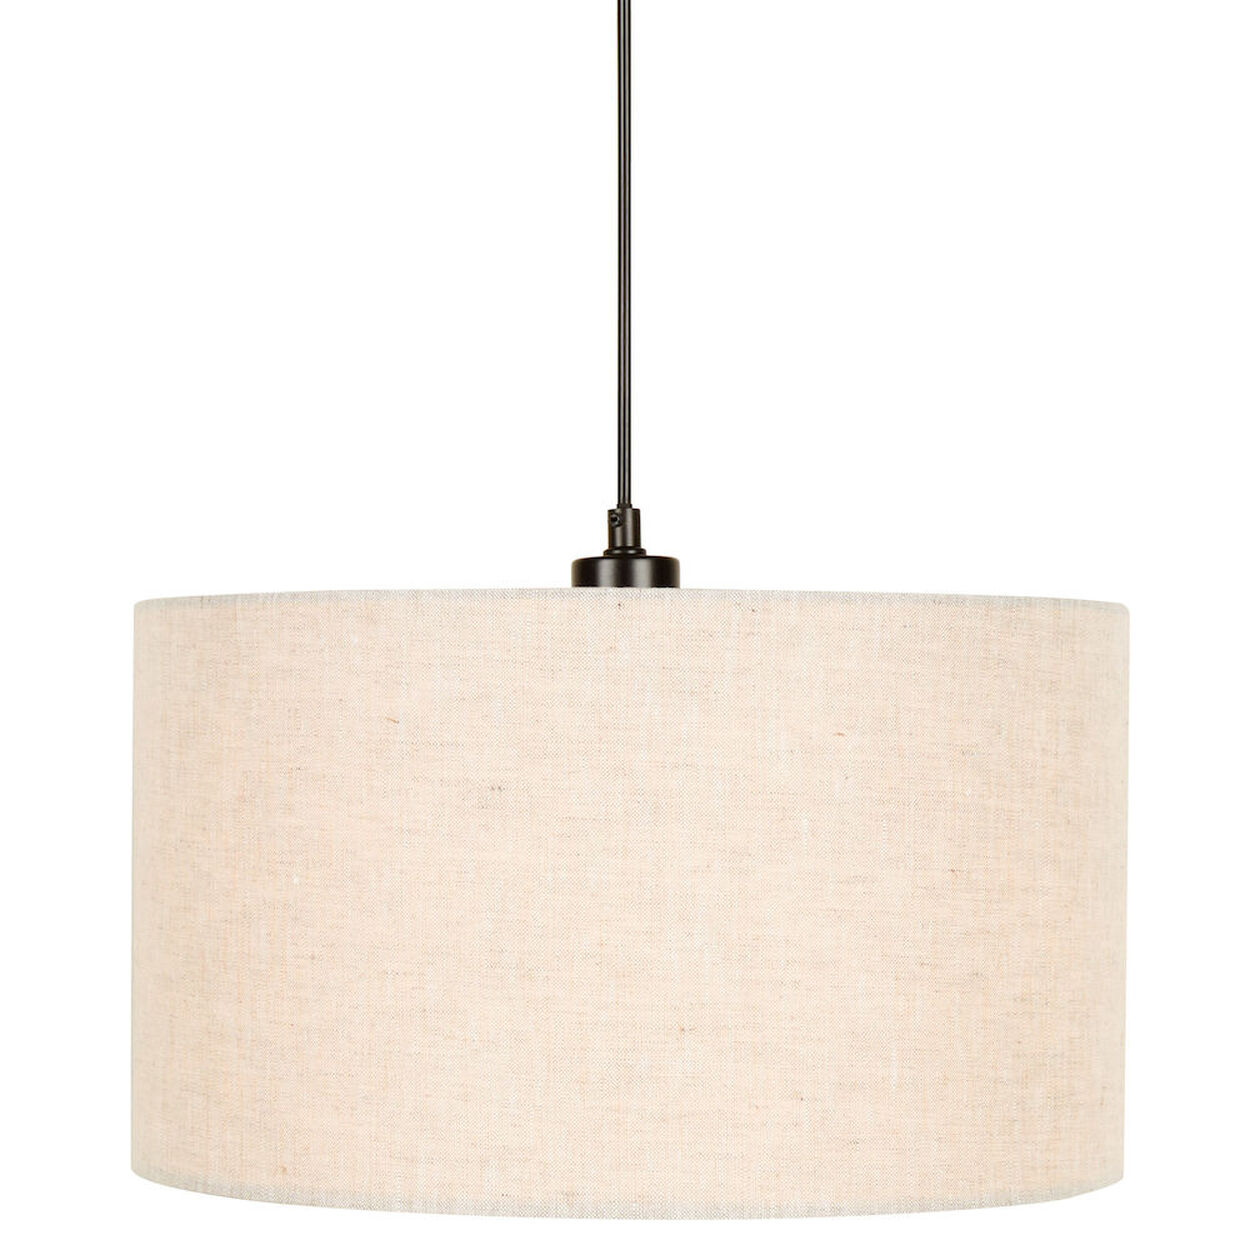 Round Linen Ceiling Lamp